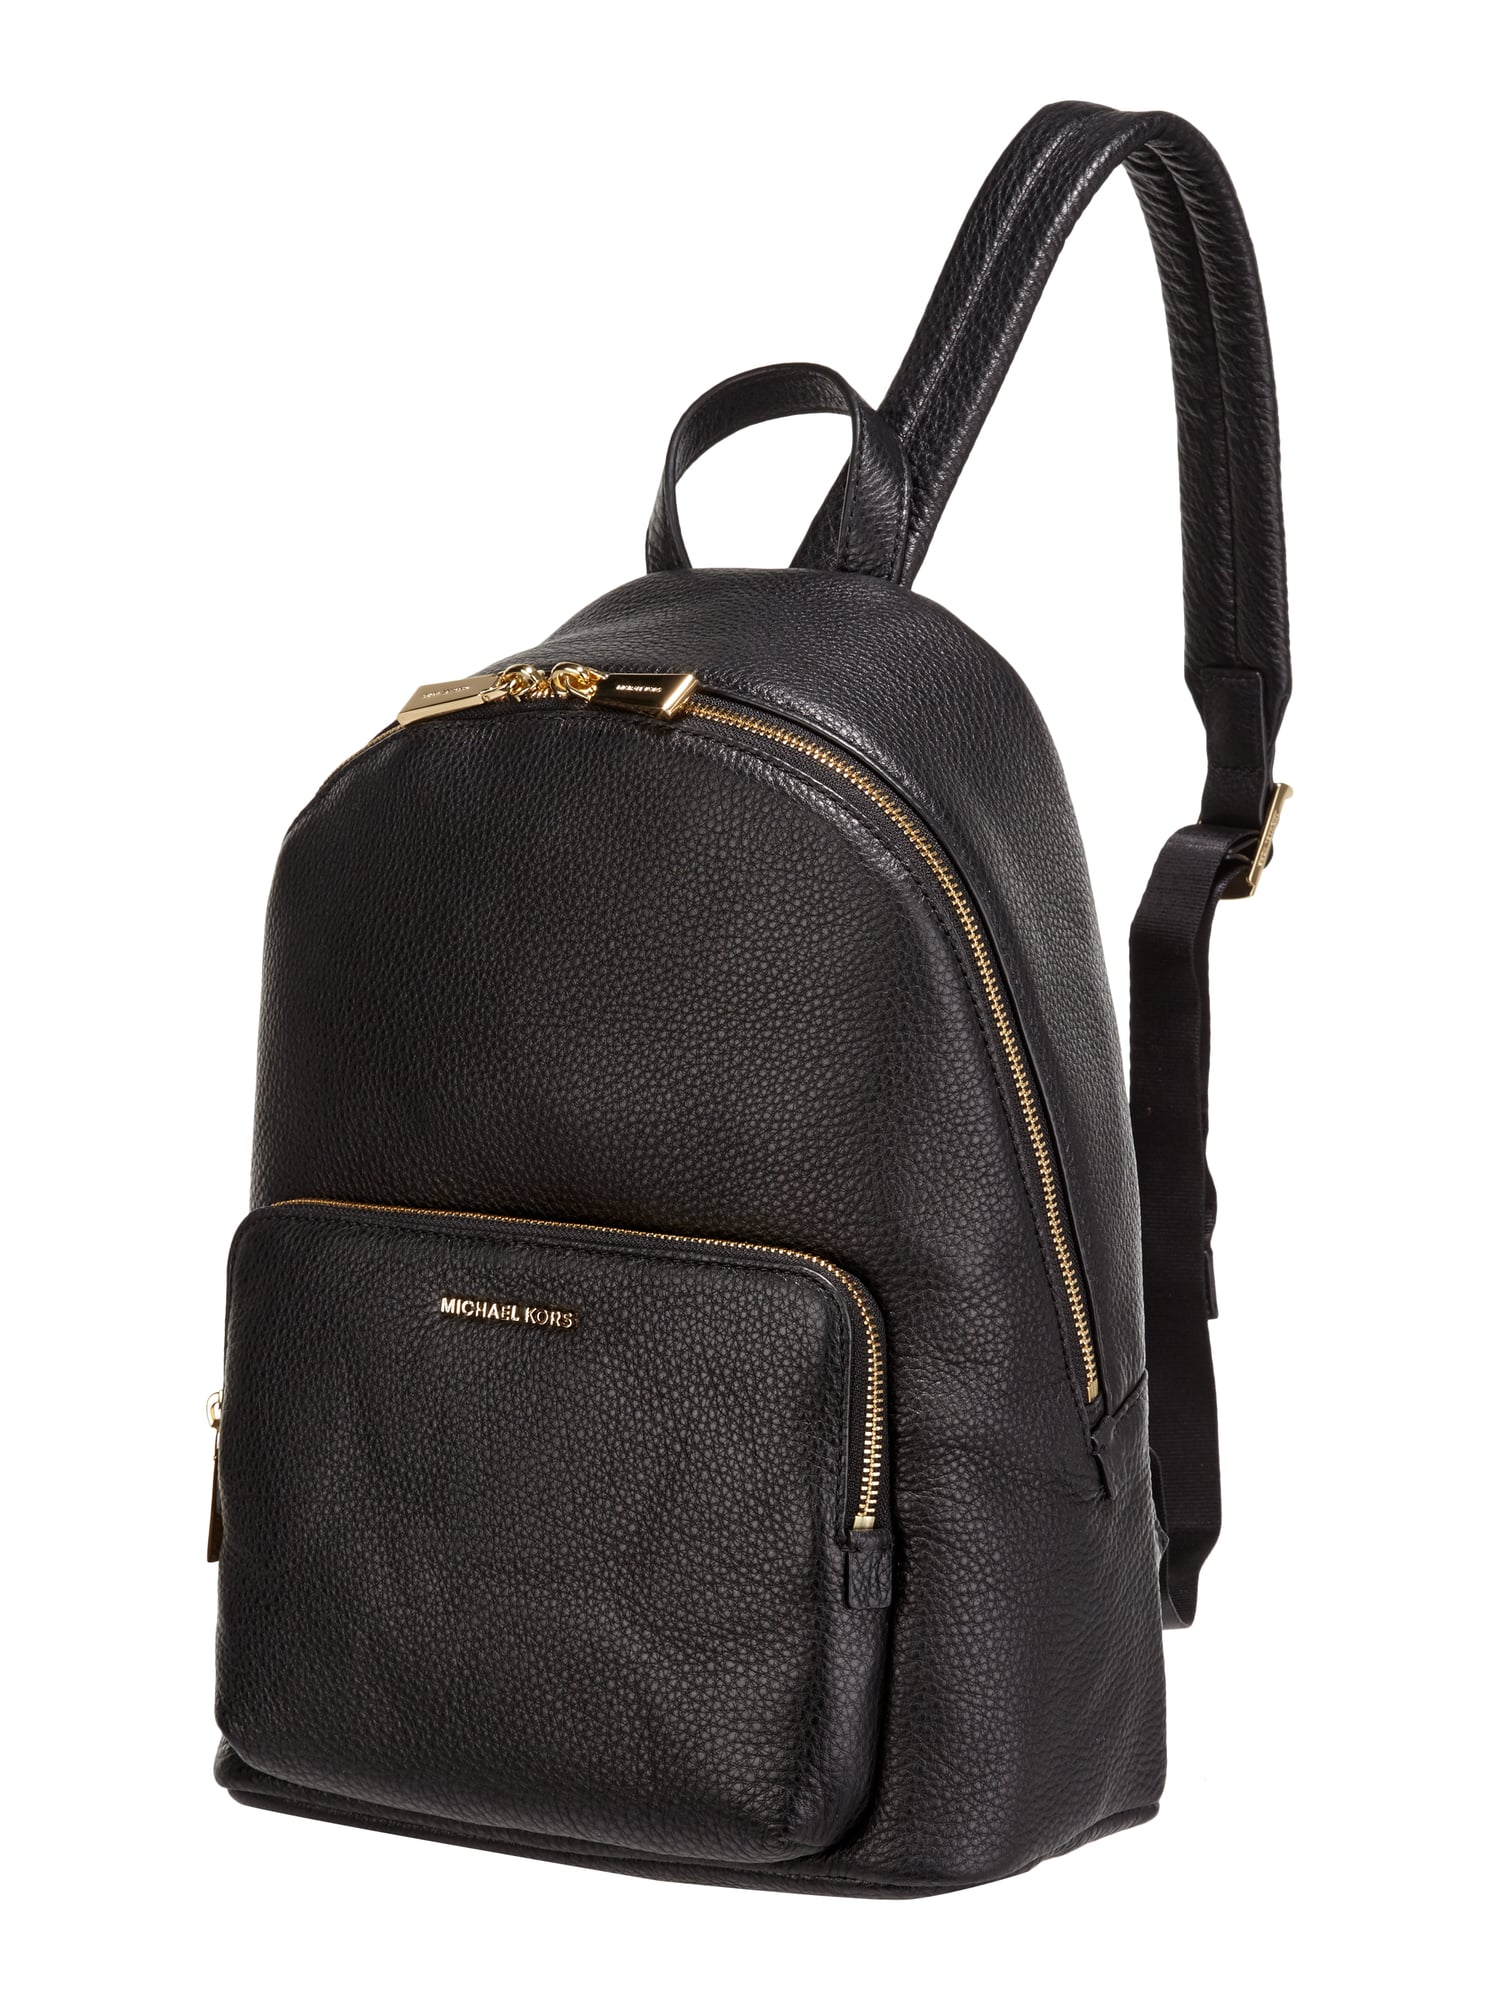 michael michael kors rucksack aus echtem leder in grau schwarz online kaufen 9732966 p c. Black Bedroom Furniture Sets. Home Design Ideas